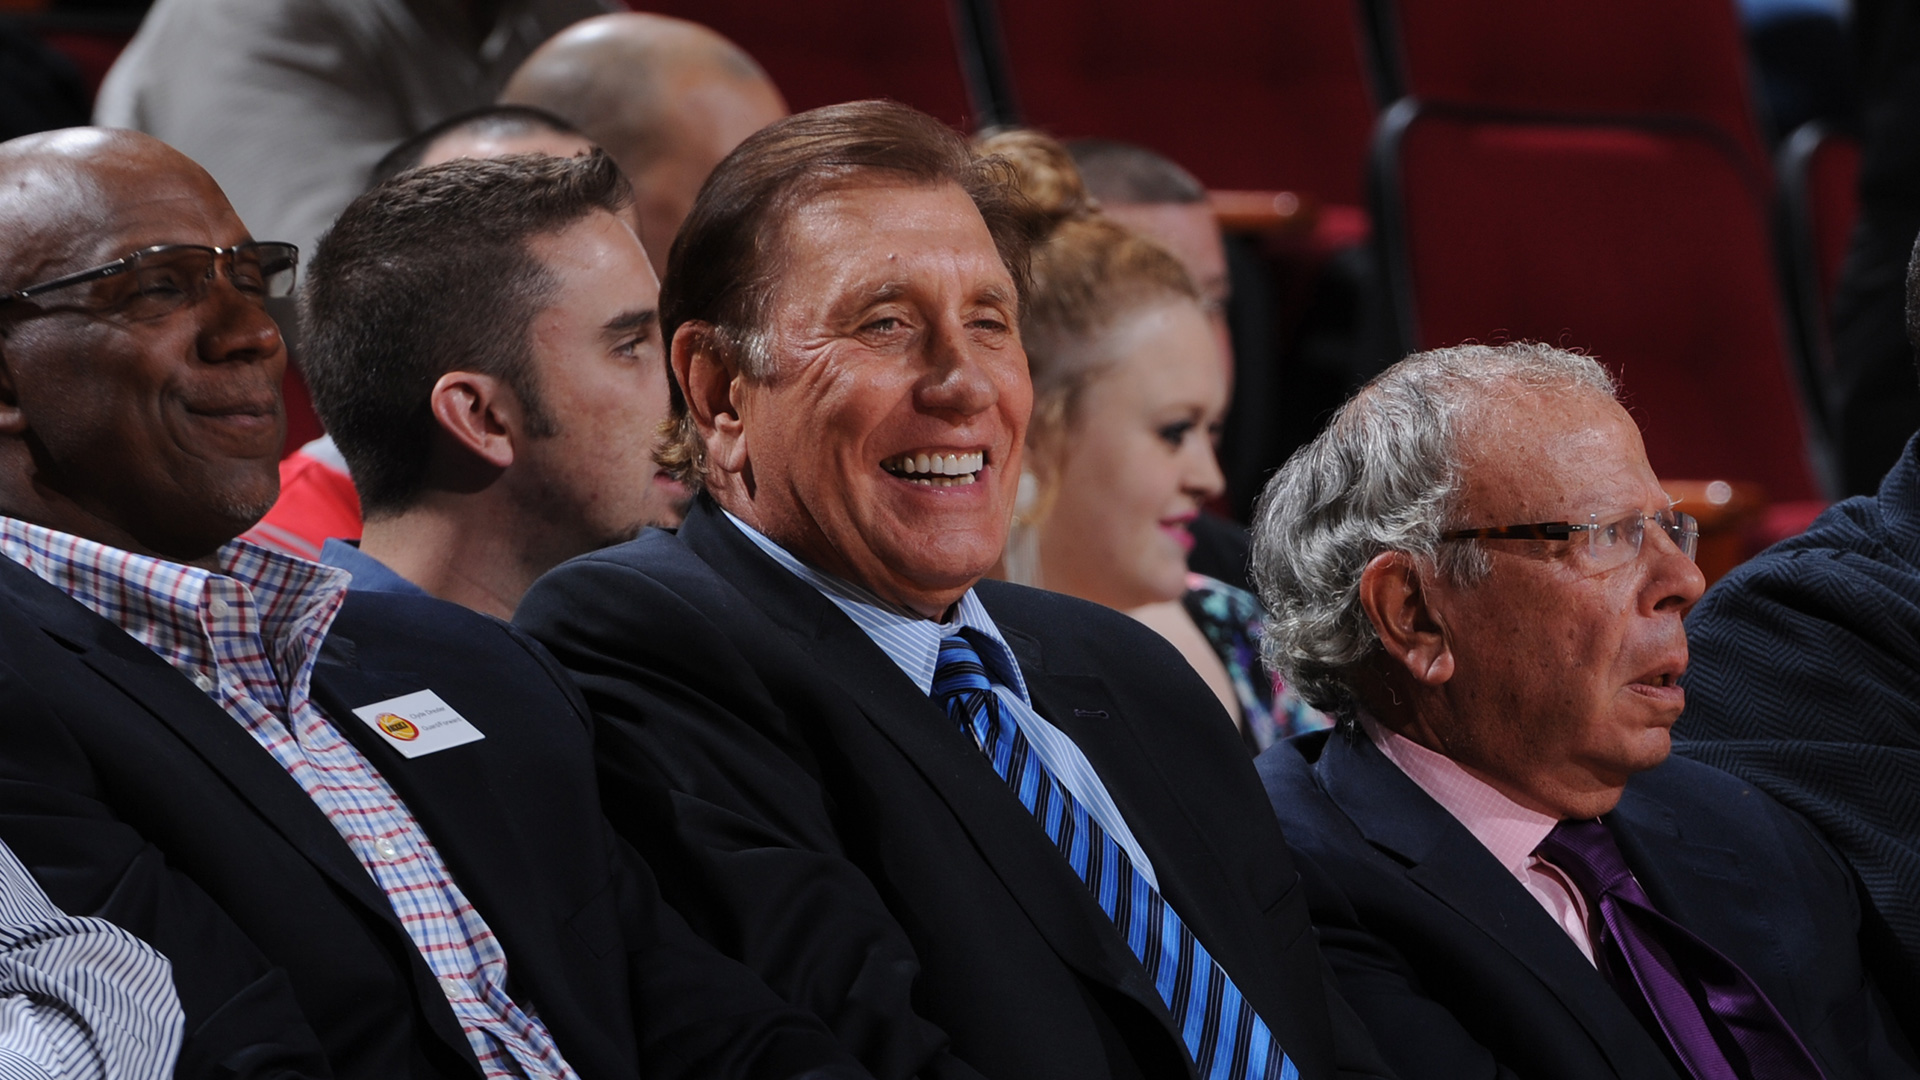 Hall of Famer Rudy Tomjanovich joins Wolves staff as personnel consultant